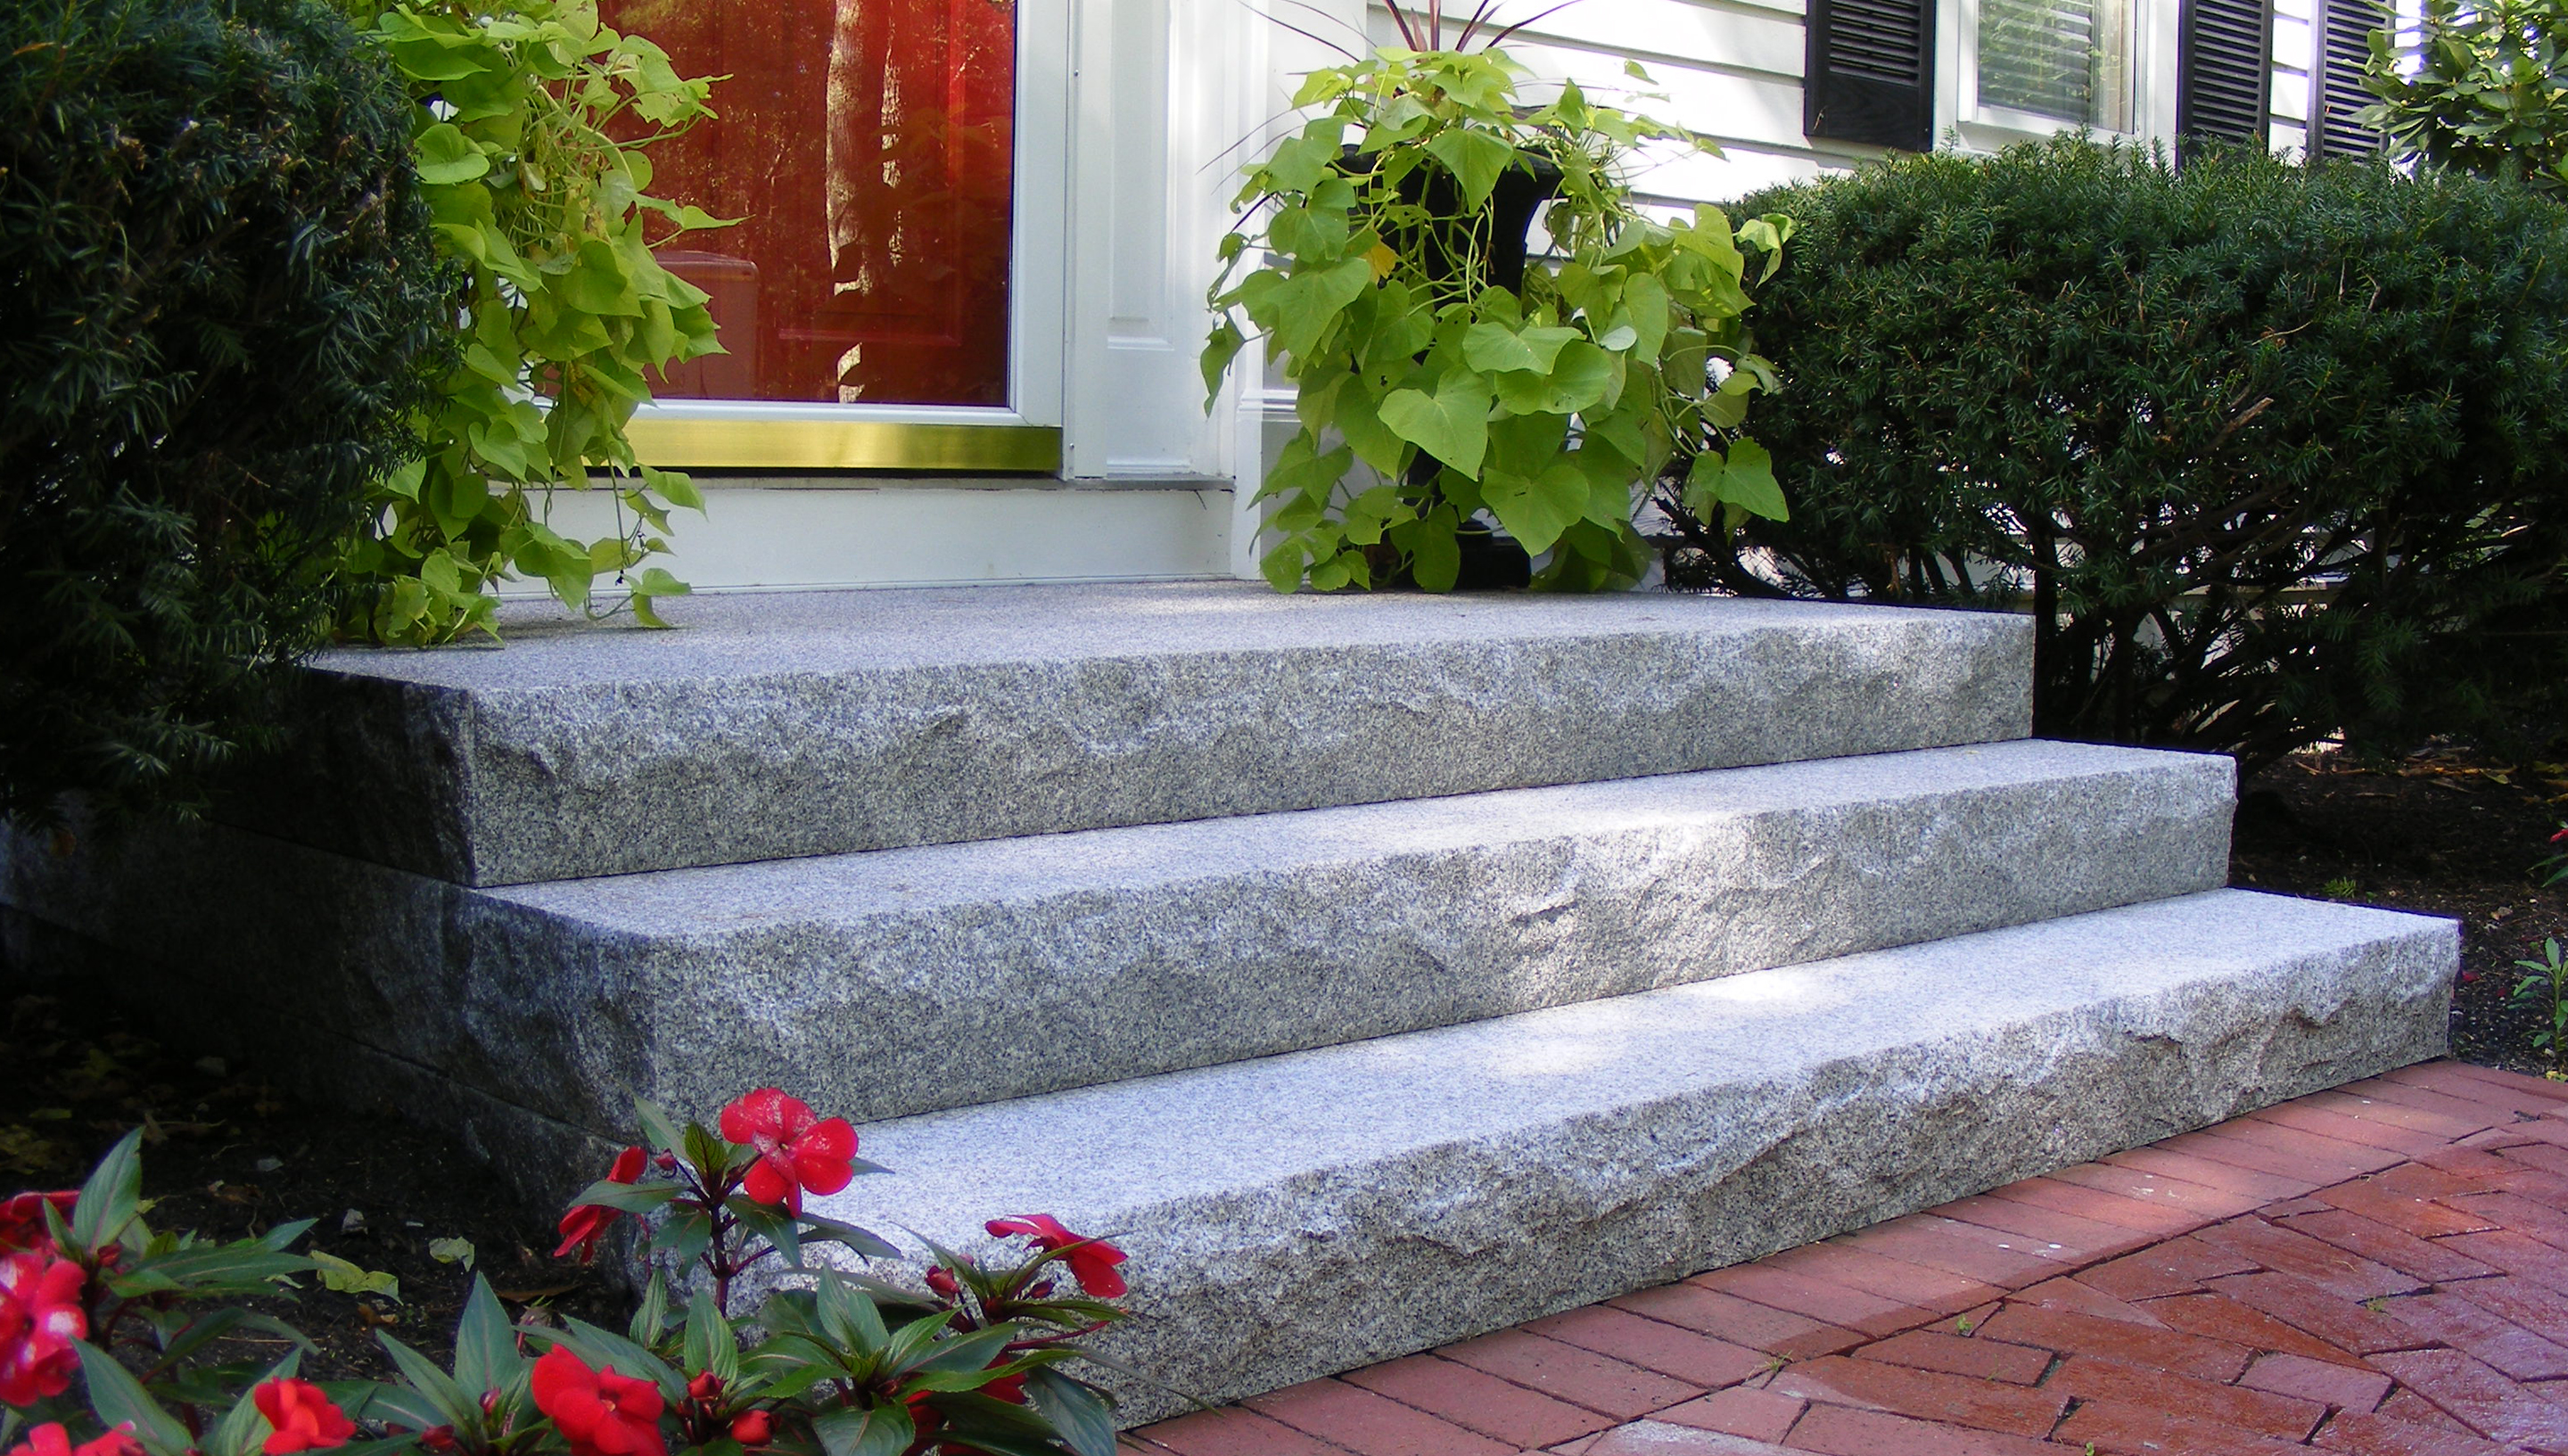 8 Ways To Add Curb Appeal To Your Home With Granite And